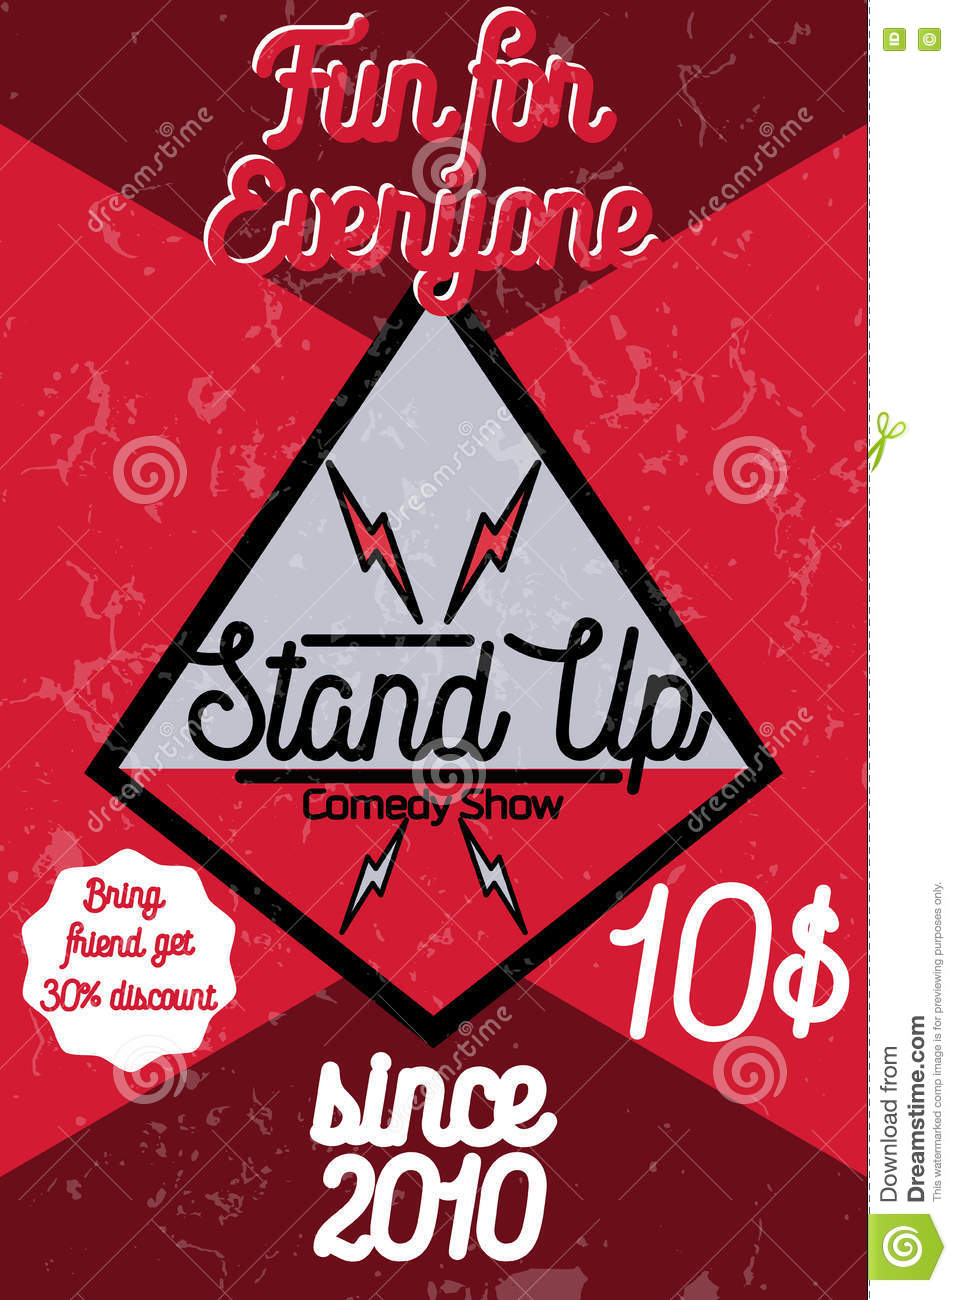 Marketing Exhibition Stand Up Comedy : Live cartoons illustrations vector stock images